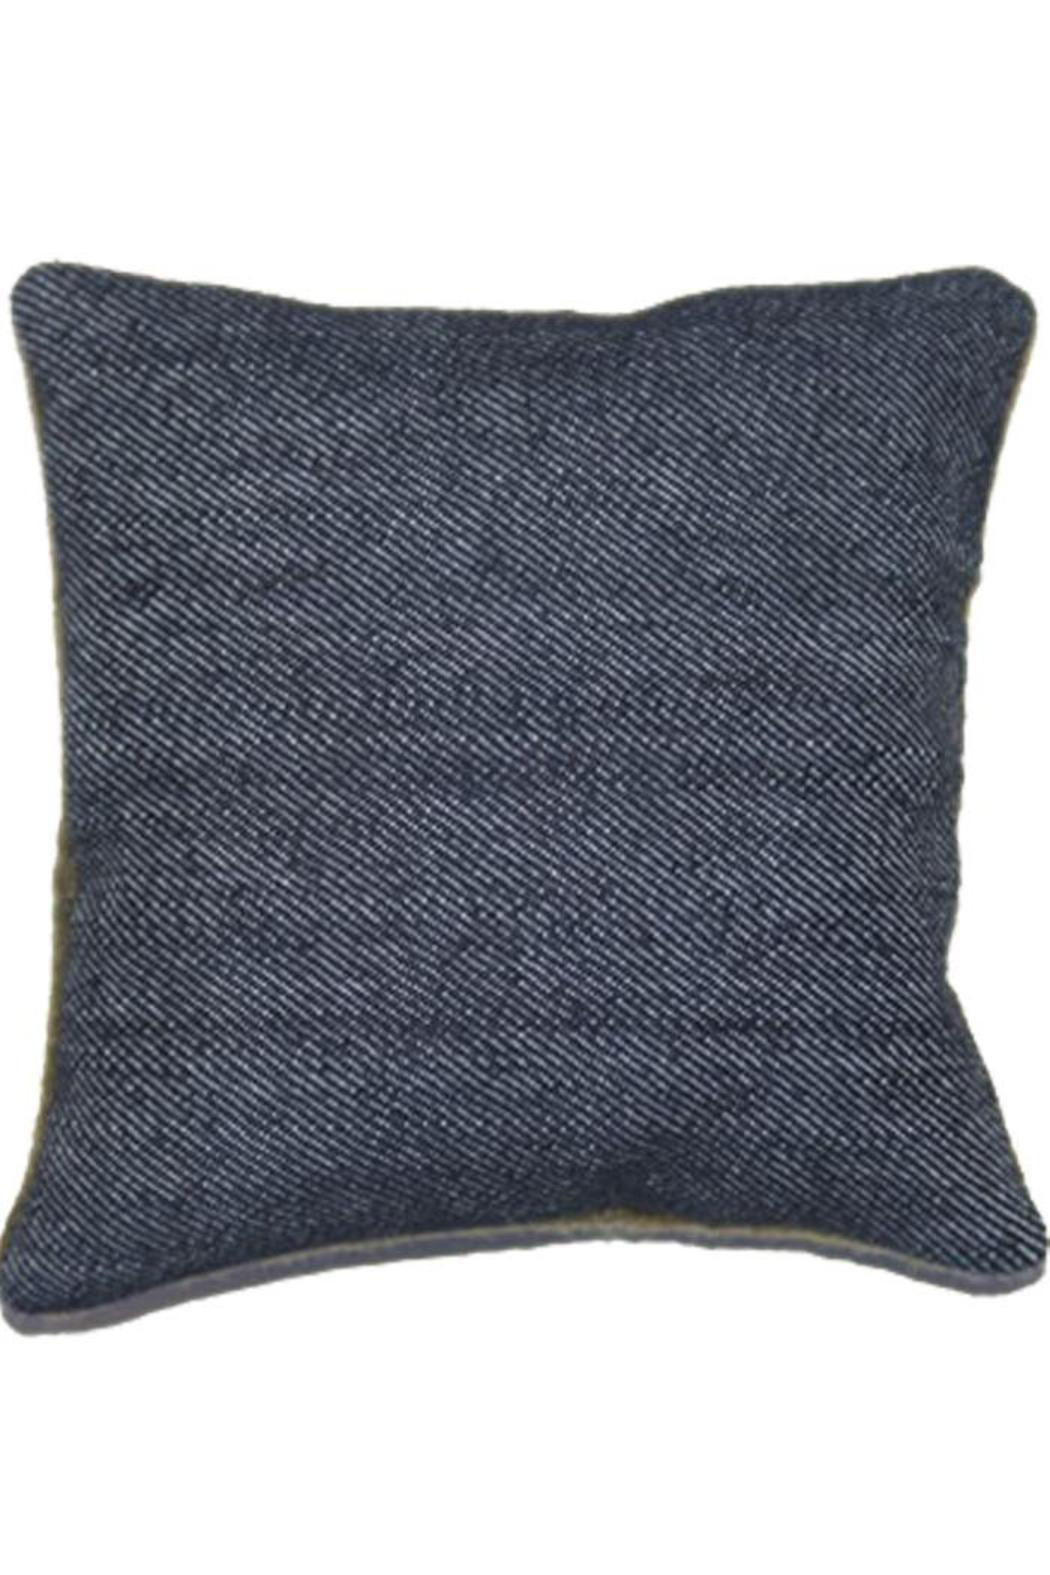 Dirt Lavender Scented Pillow from Nashville by Two Old